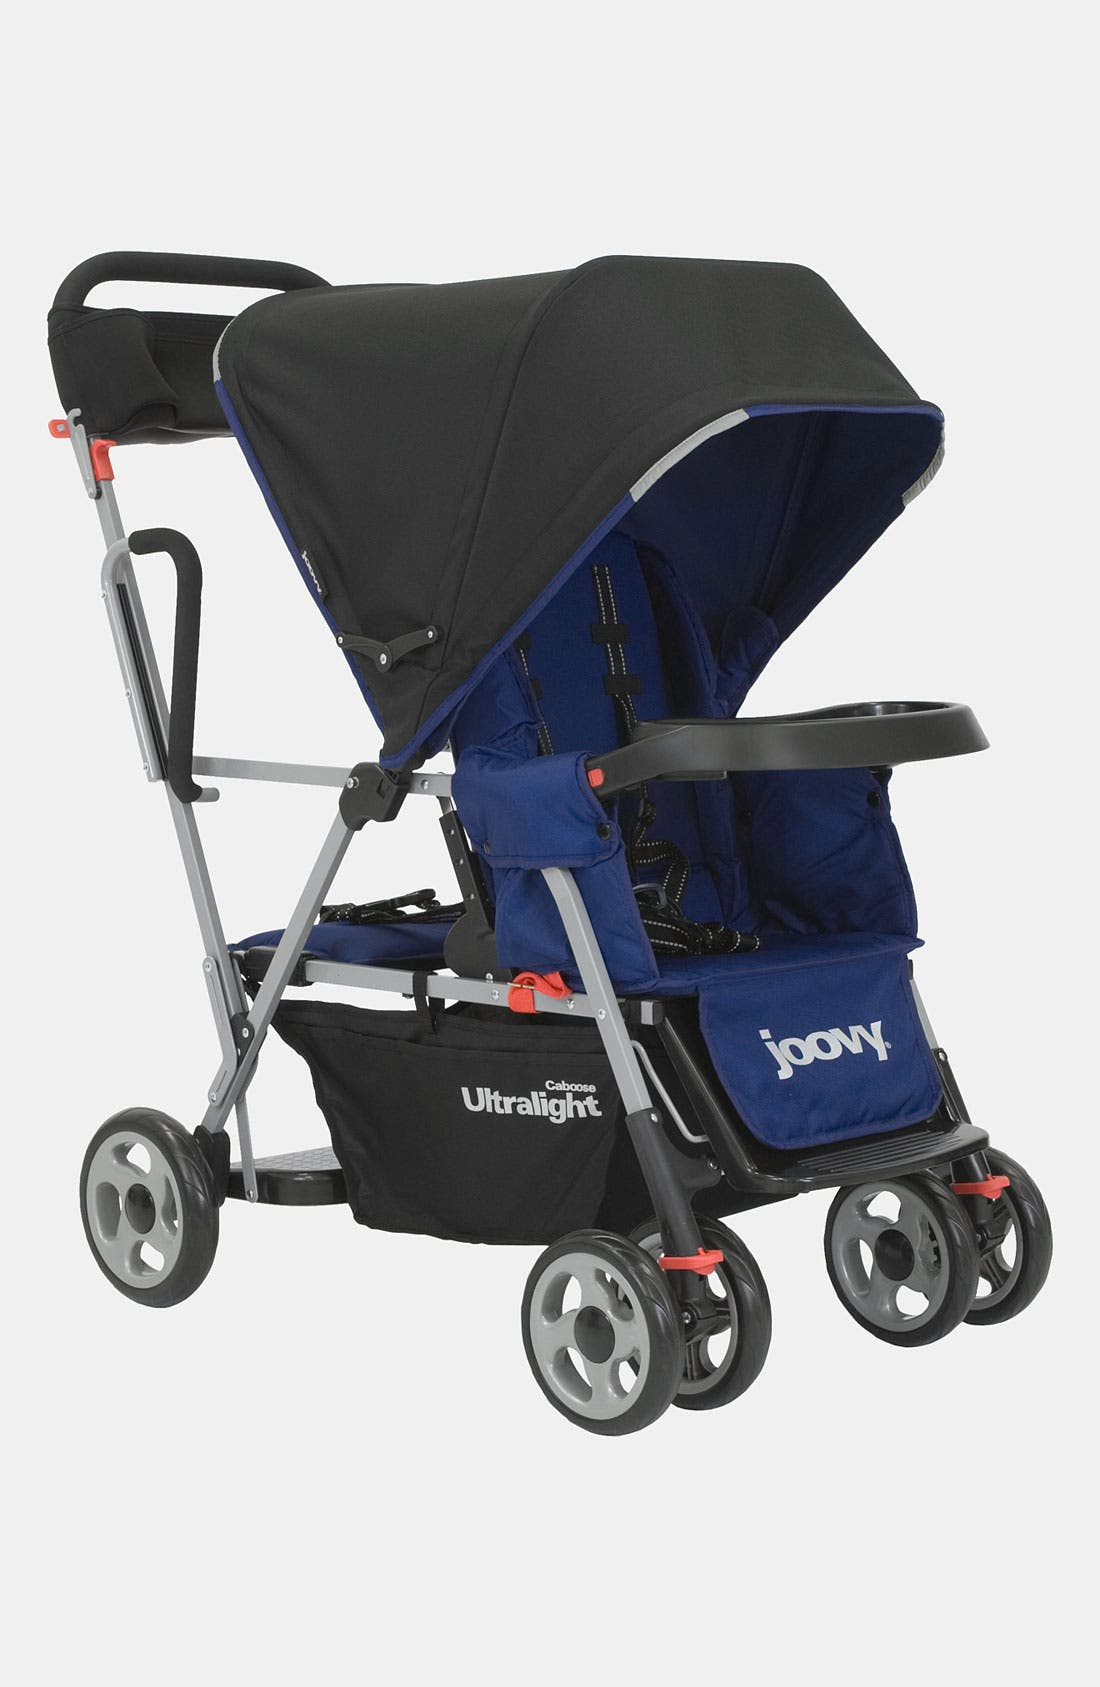 Alternate Image 1 Selected - Joovy 'Caboose Ultralight - Stand-On Tandem' Stroller